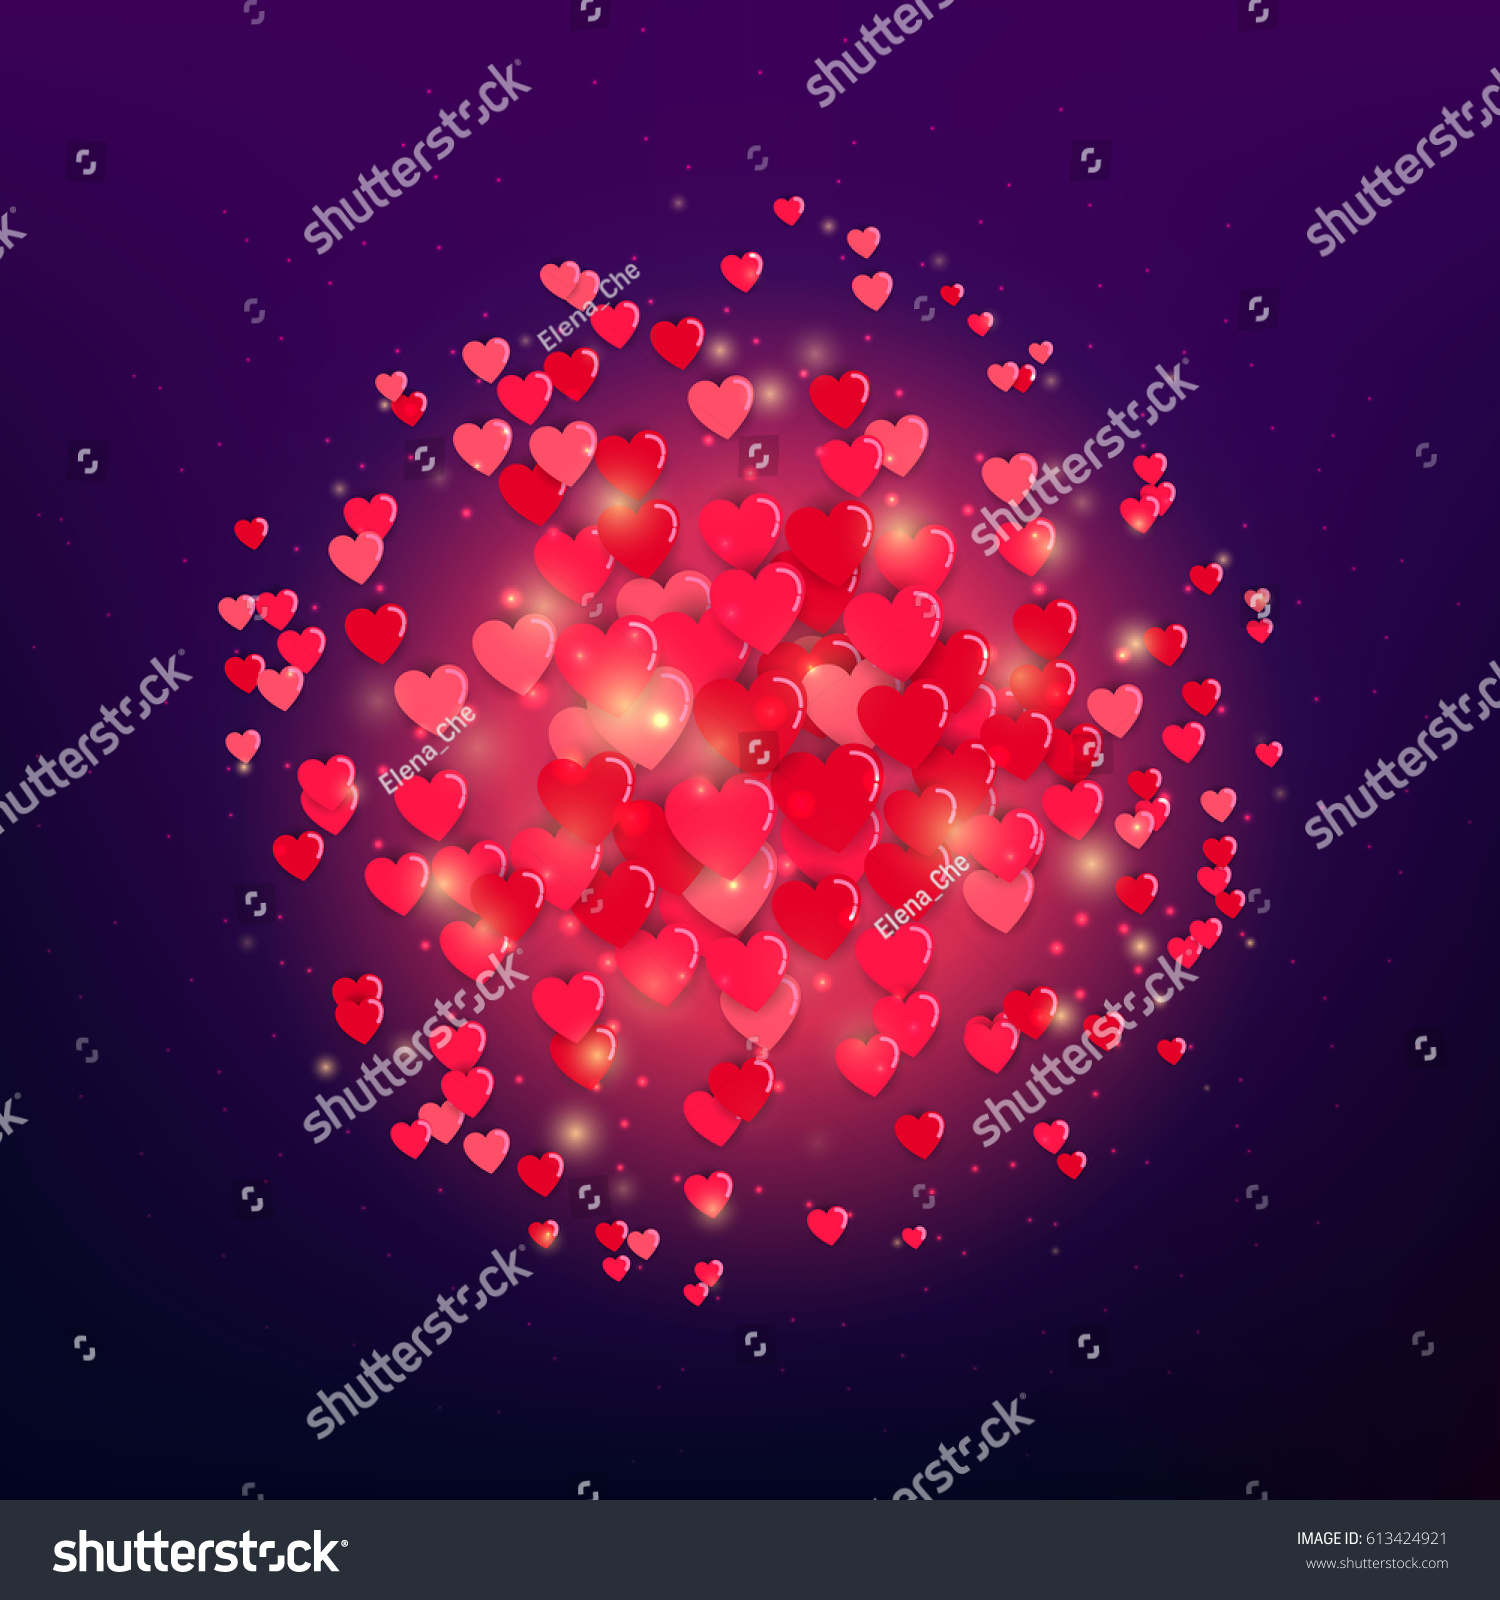 heart explosion hearts valentines day love stock vector 613424921